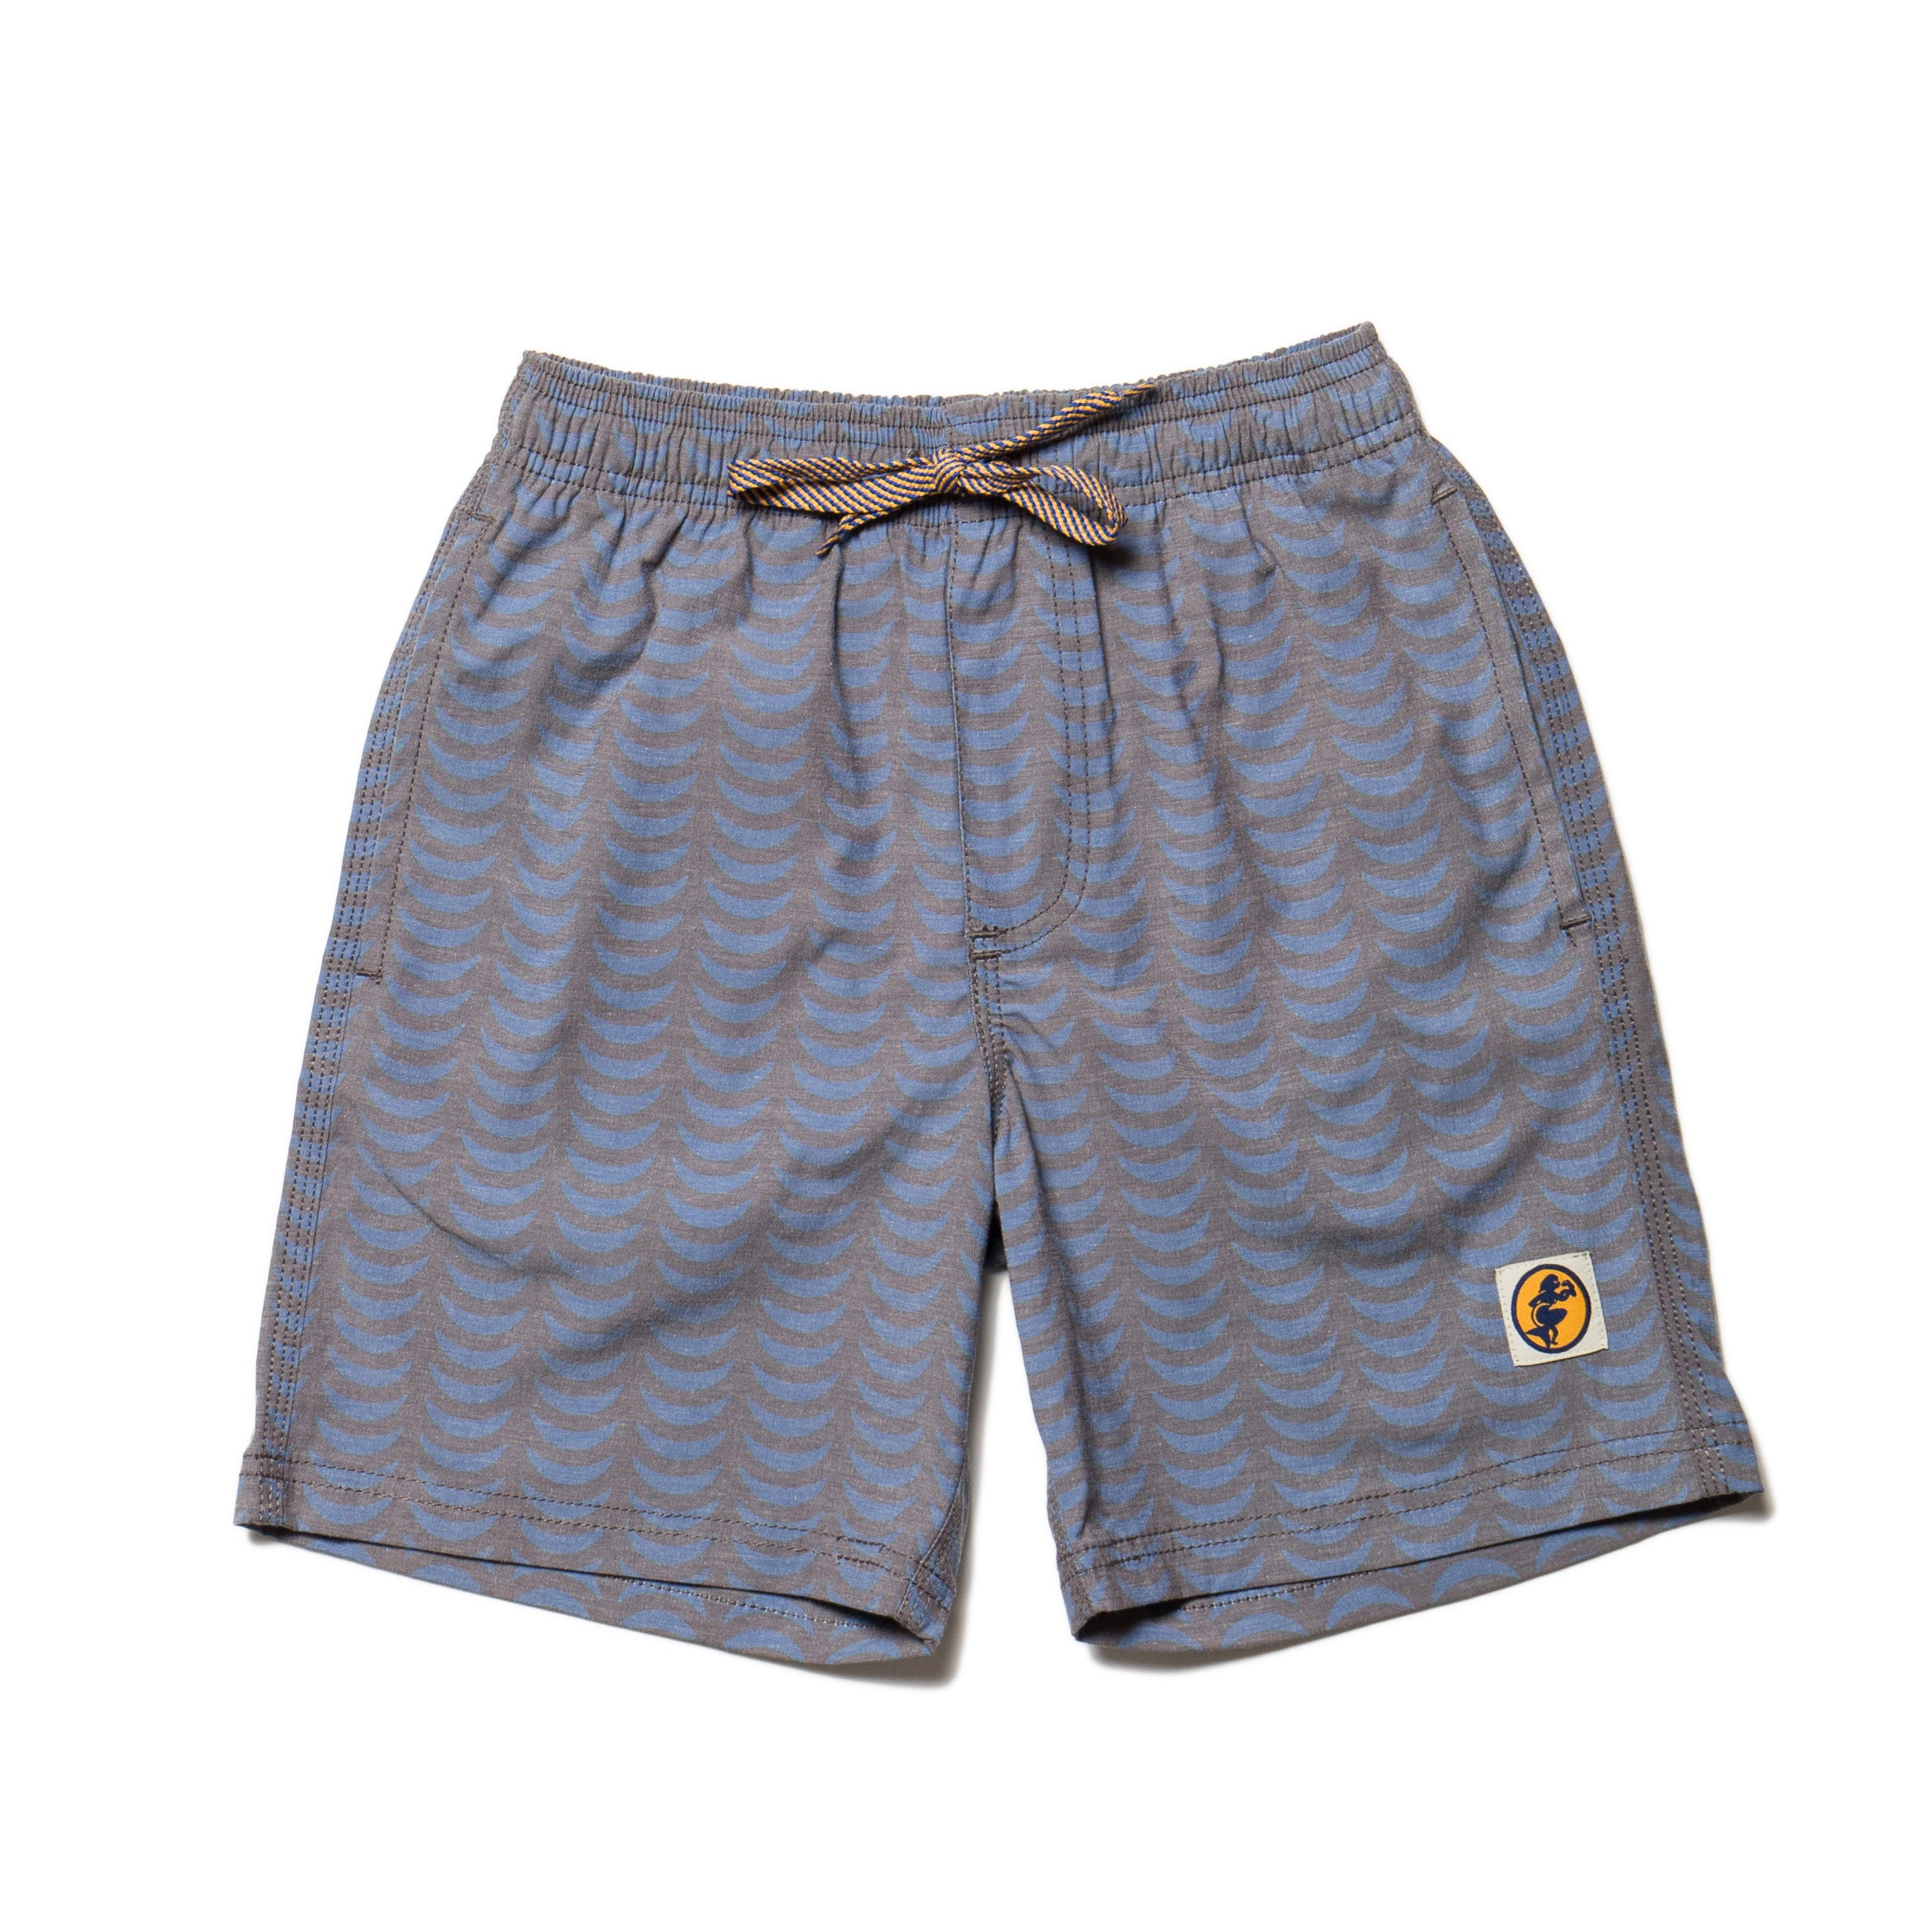 Tofo Surf Trunk